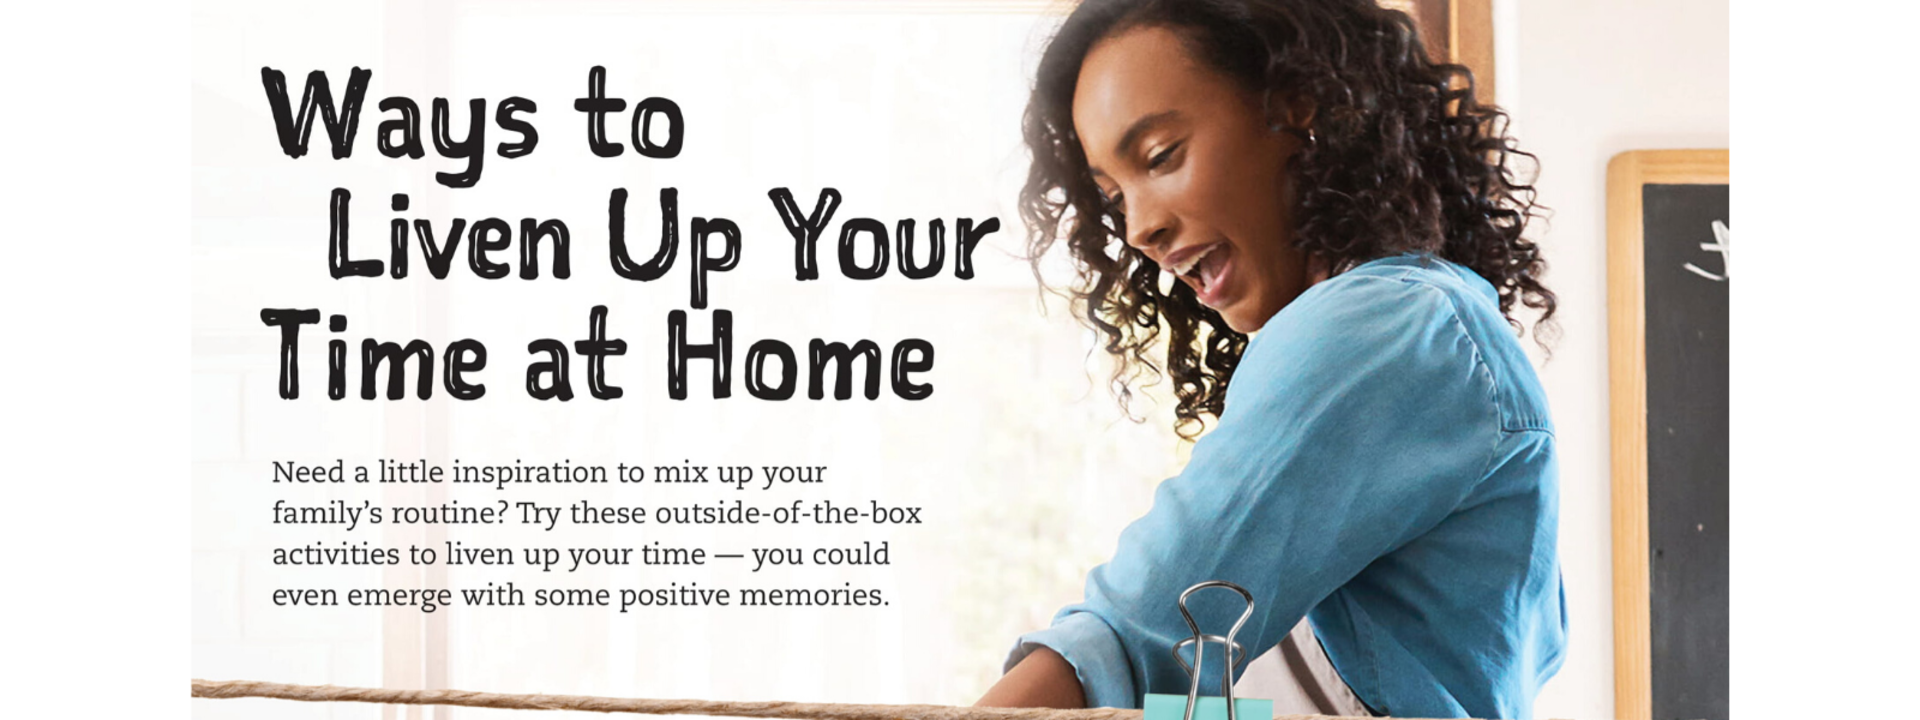 Ways to Liven Up Your Time at Home